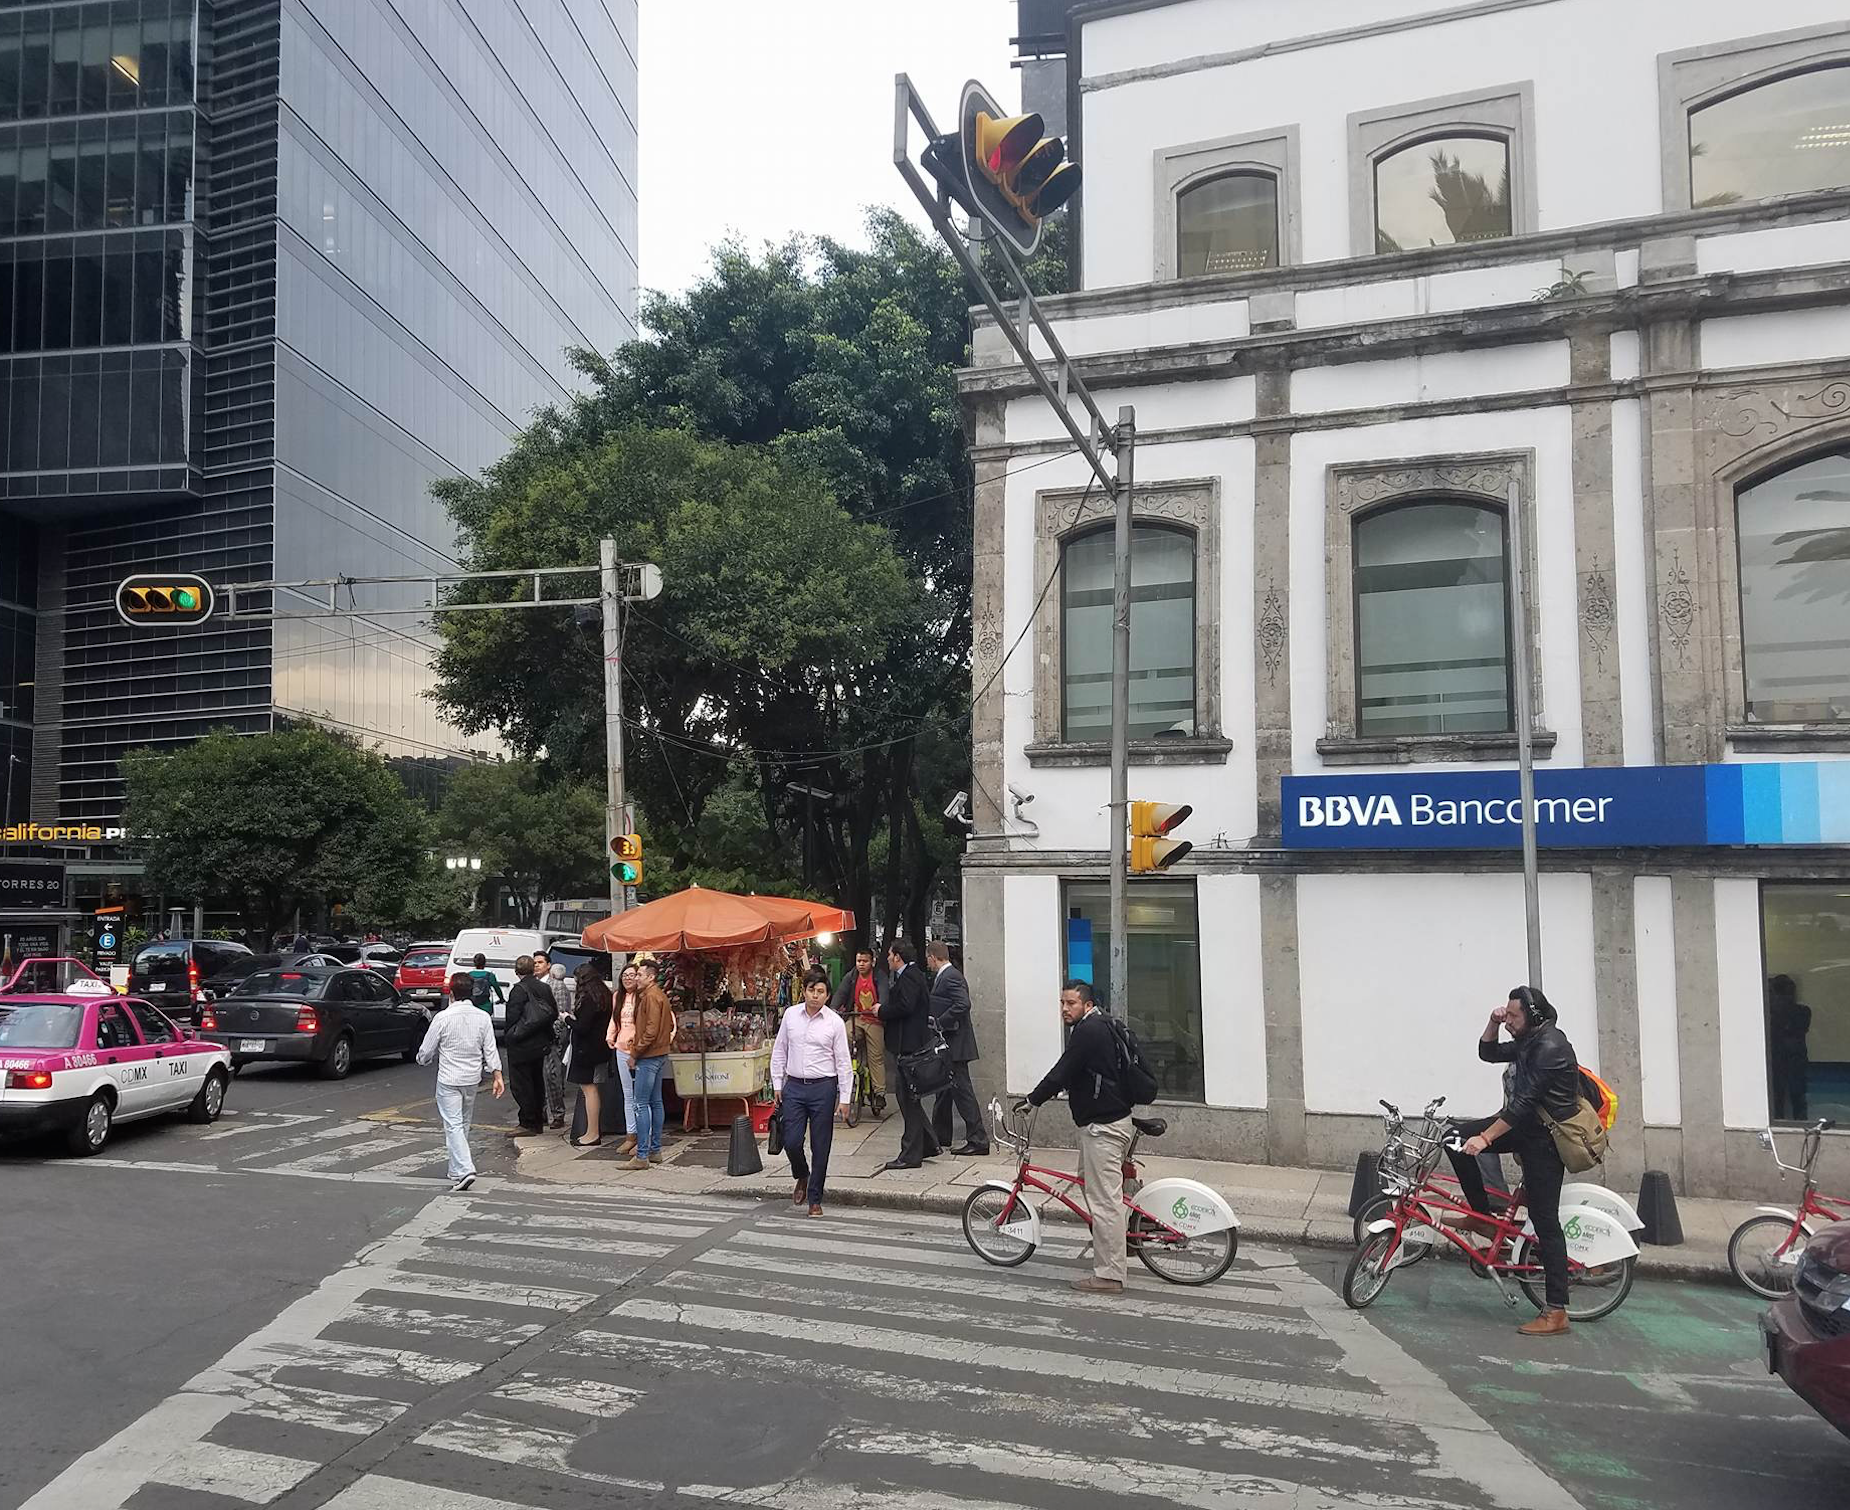 Street life in Mexico City.